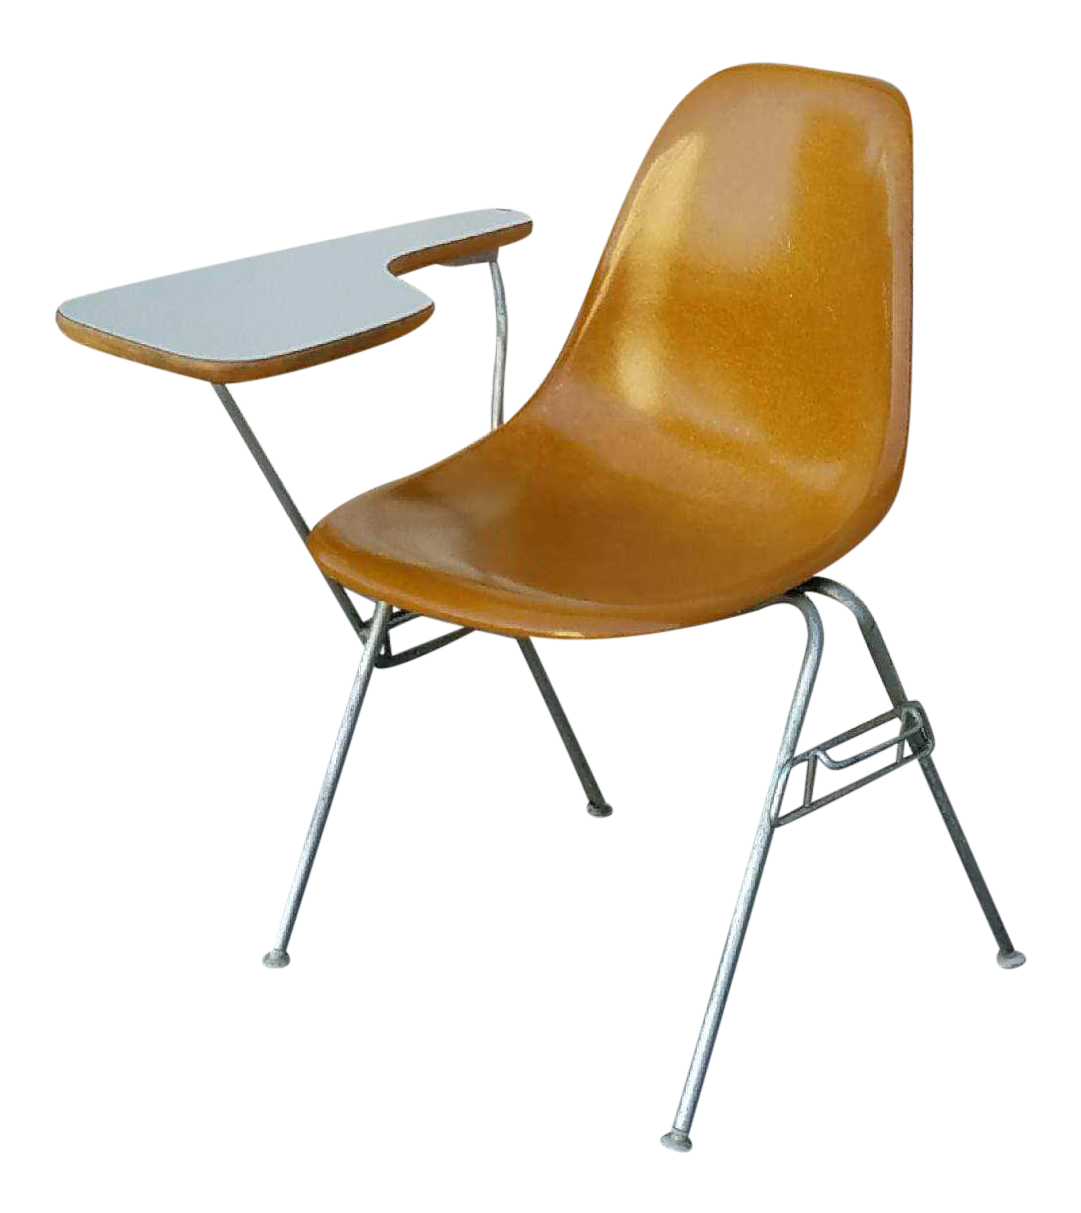 Herman Miller Eames Chair W/Attached Desk